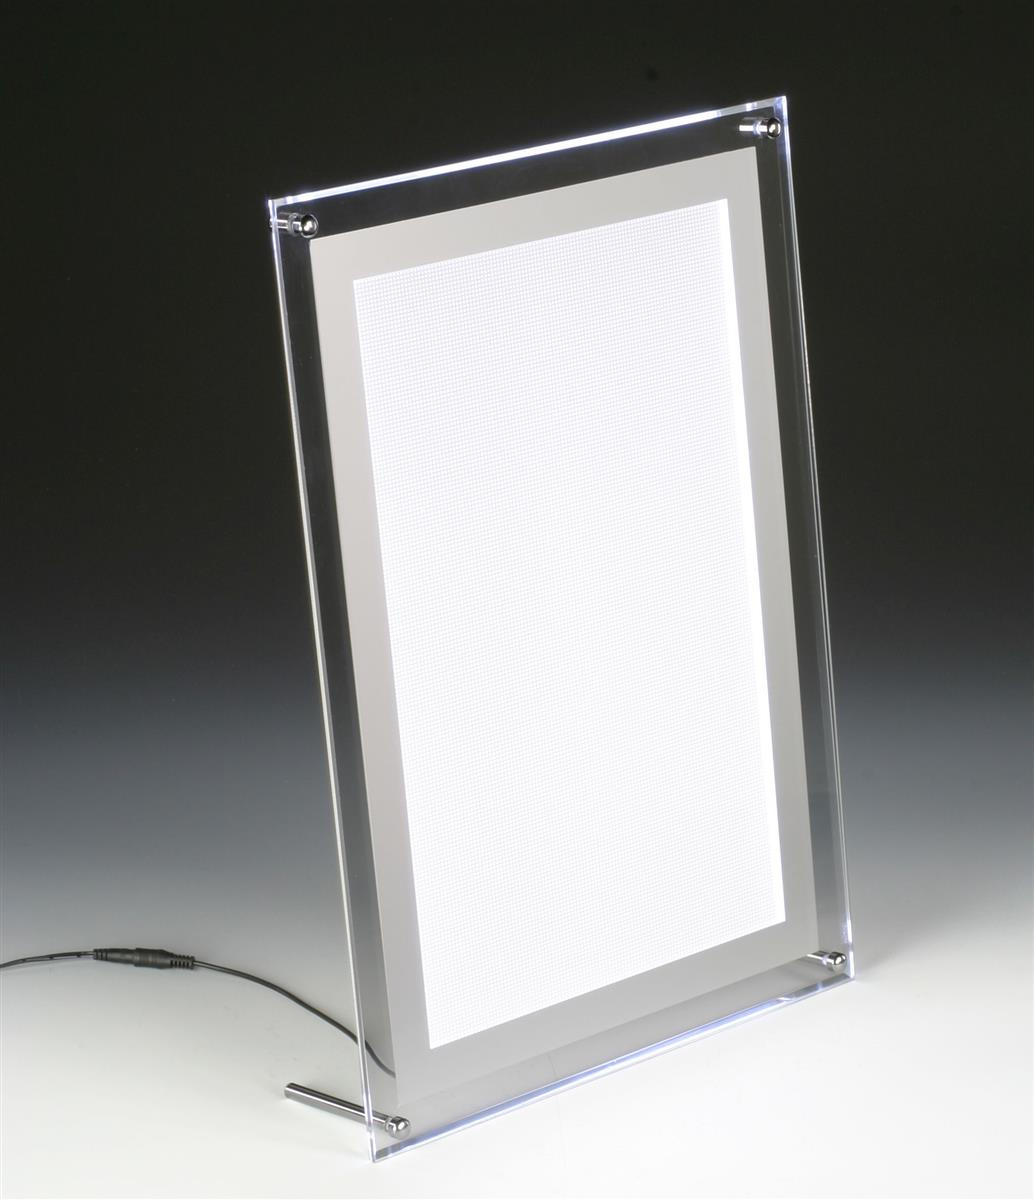 Wall Hung Light Box : Slim Light Box Countertop or Wall Mount Frame